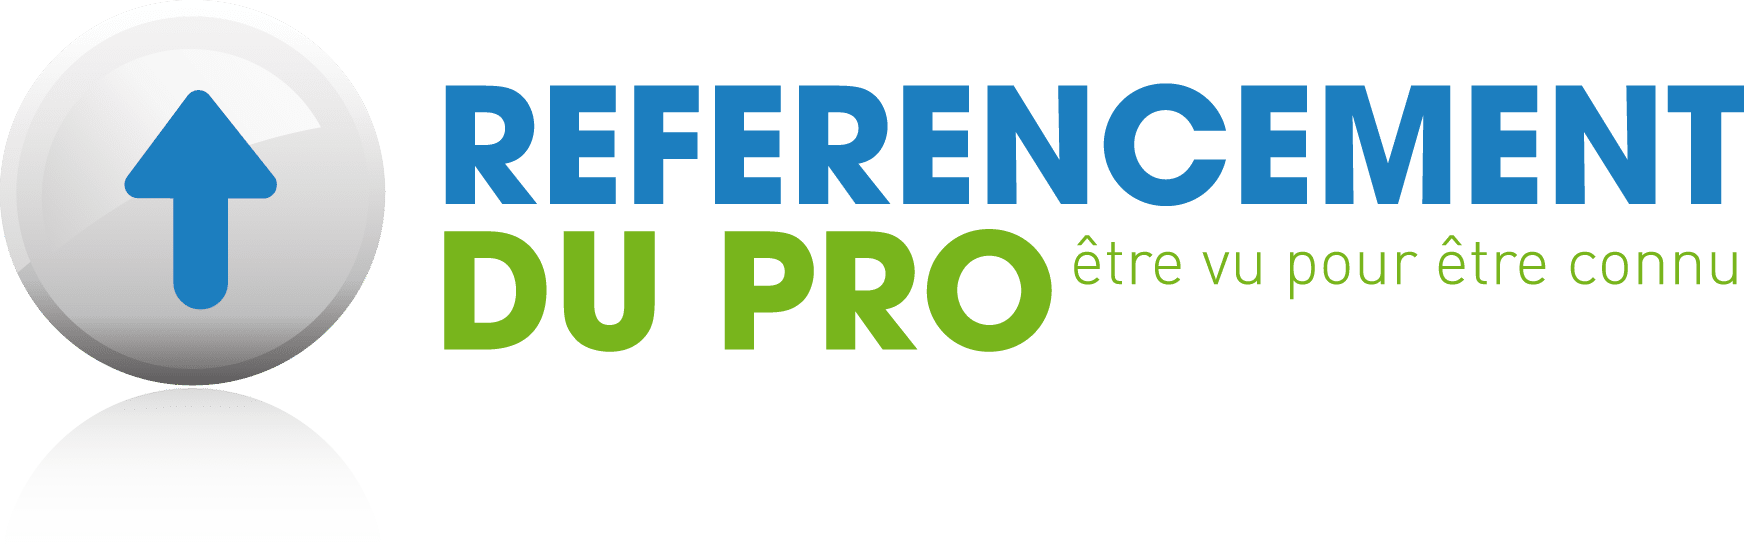 https://www.referencement-du-pro.com/wp-content/uploads/logo-ref-ok.png